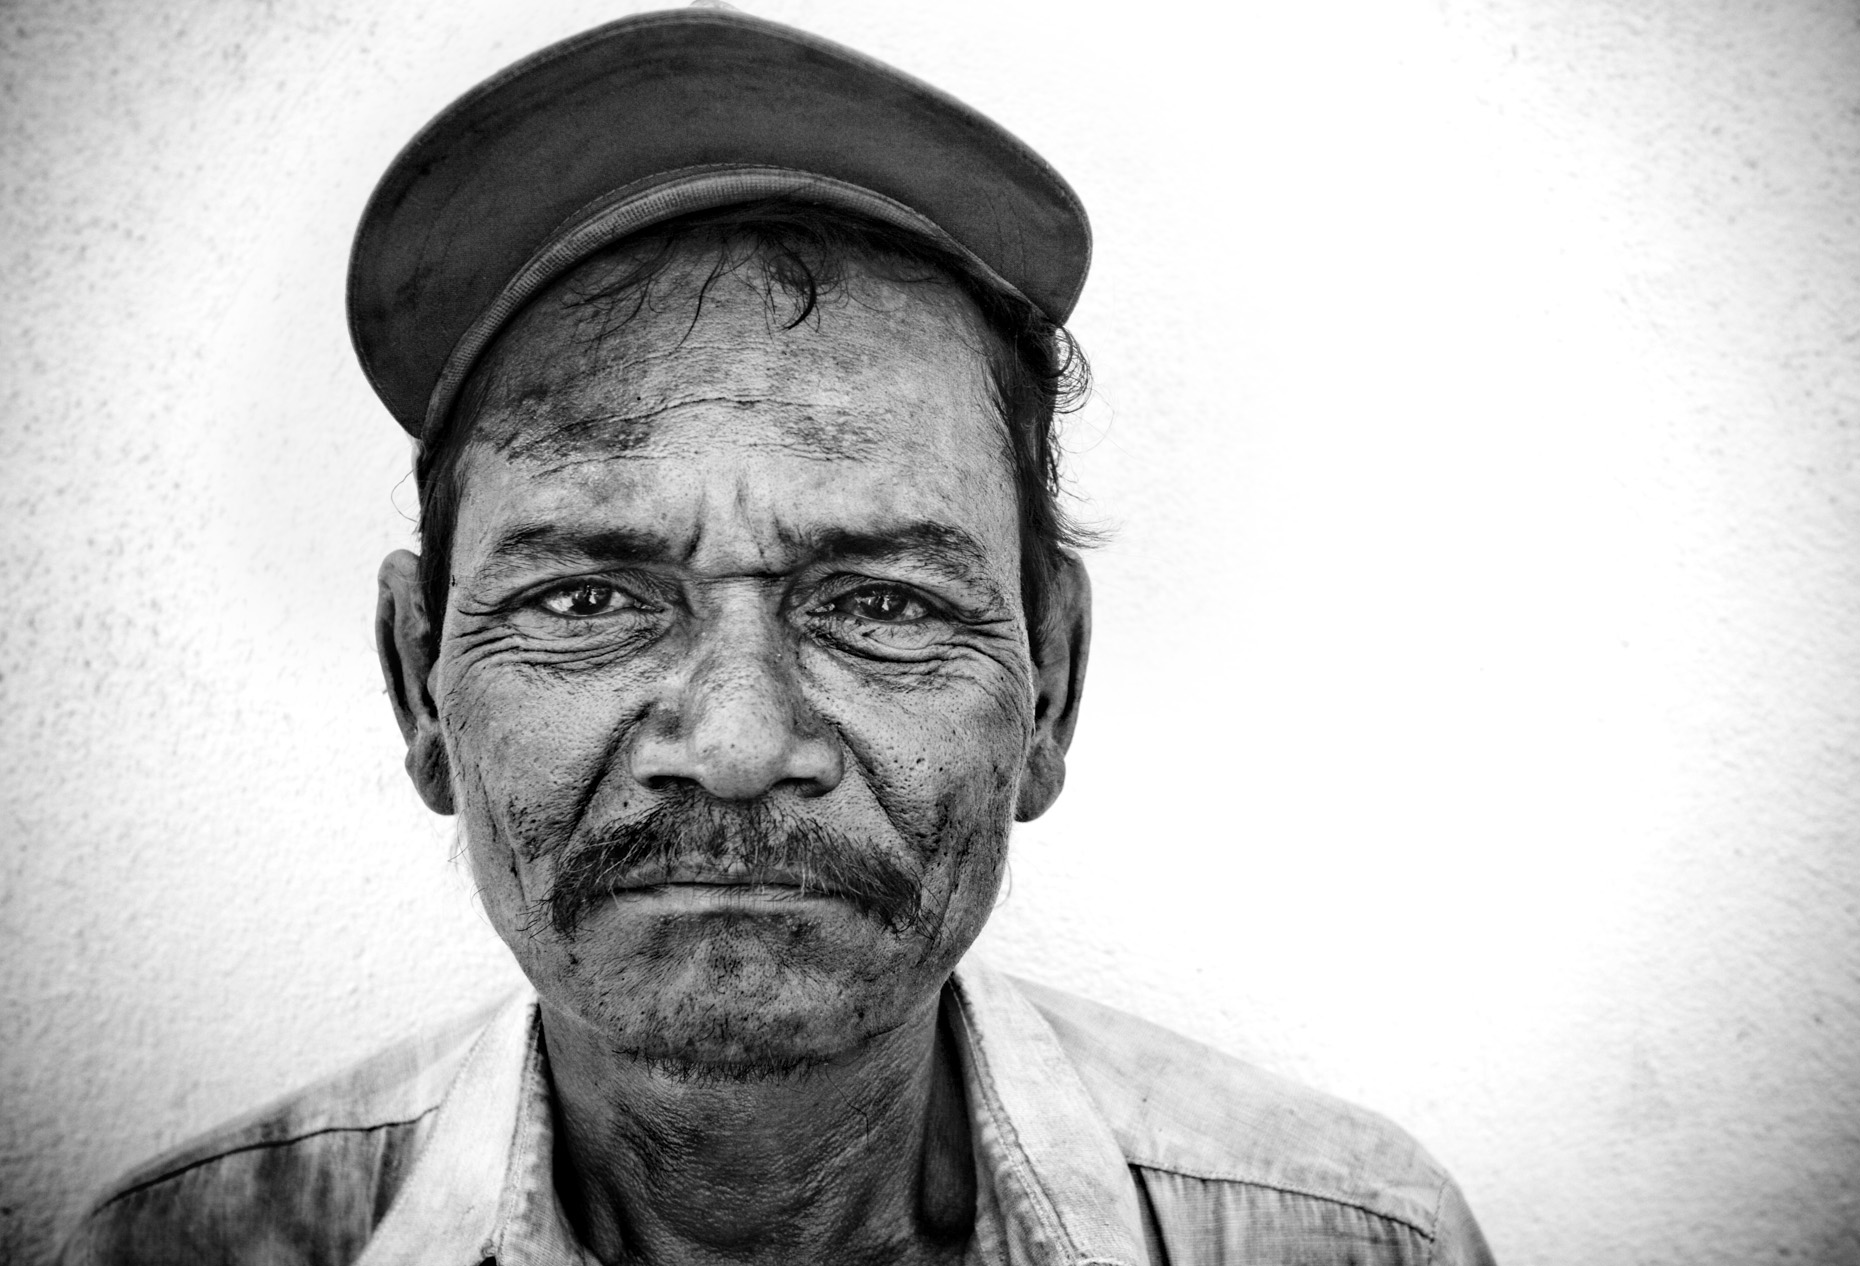 La Chureca by Boston based commercial portrait photographer Brian Nevins